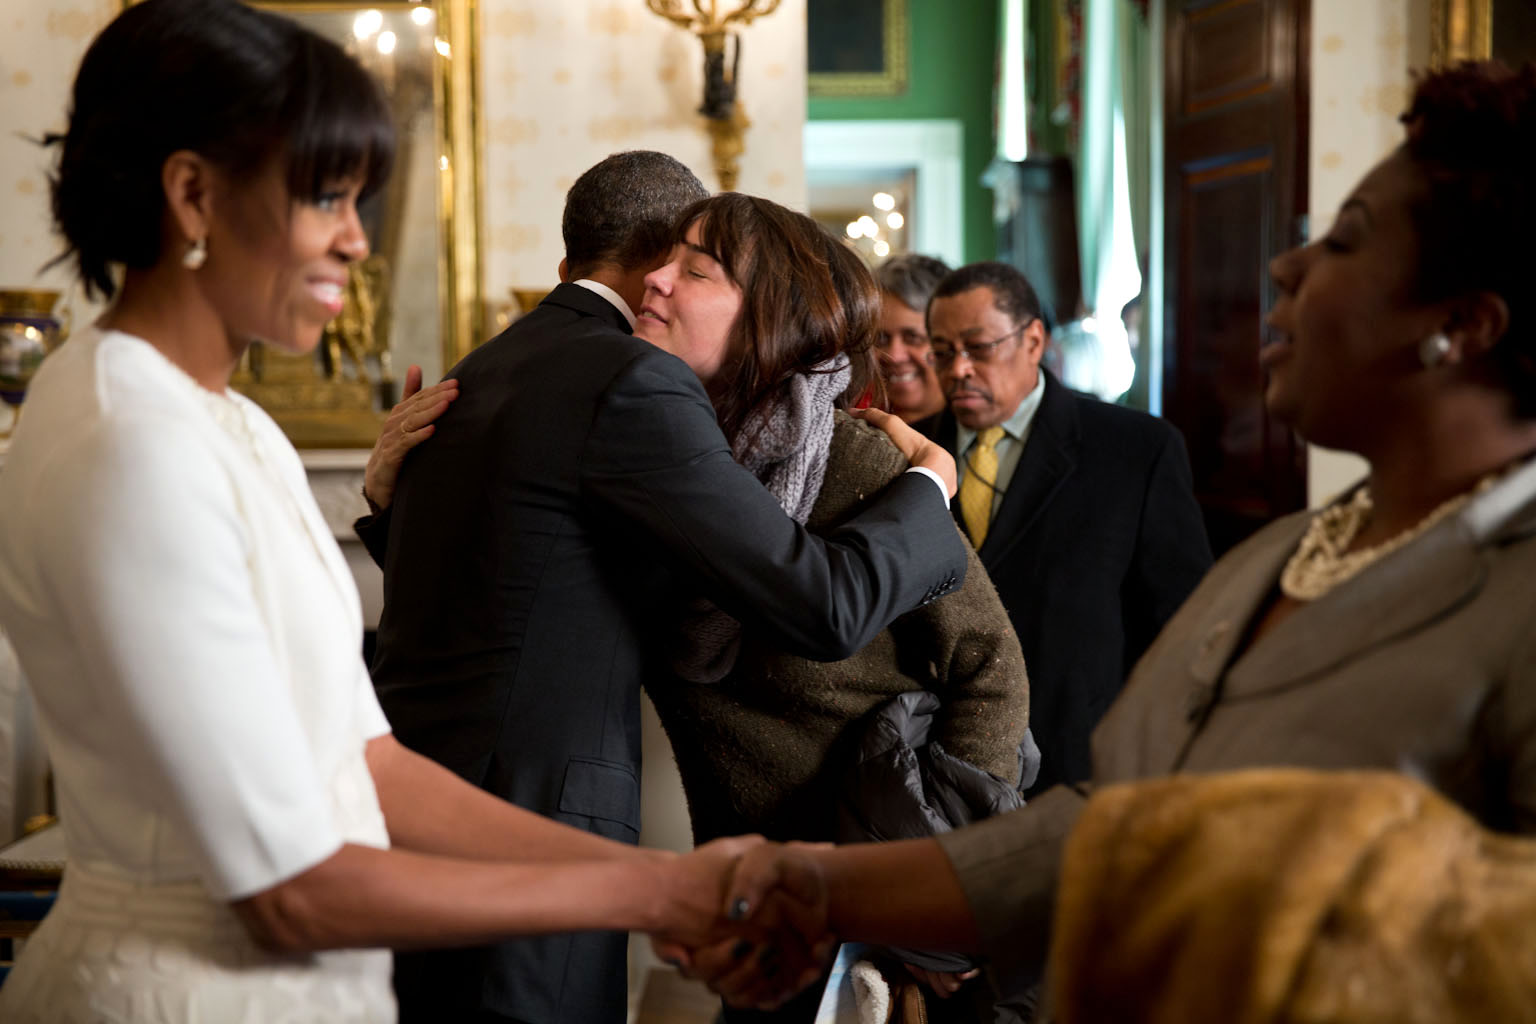 President and Mrs Obama Surprise Guests on a White House Tour, Jan. 22, 2013